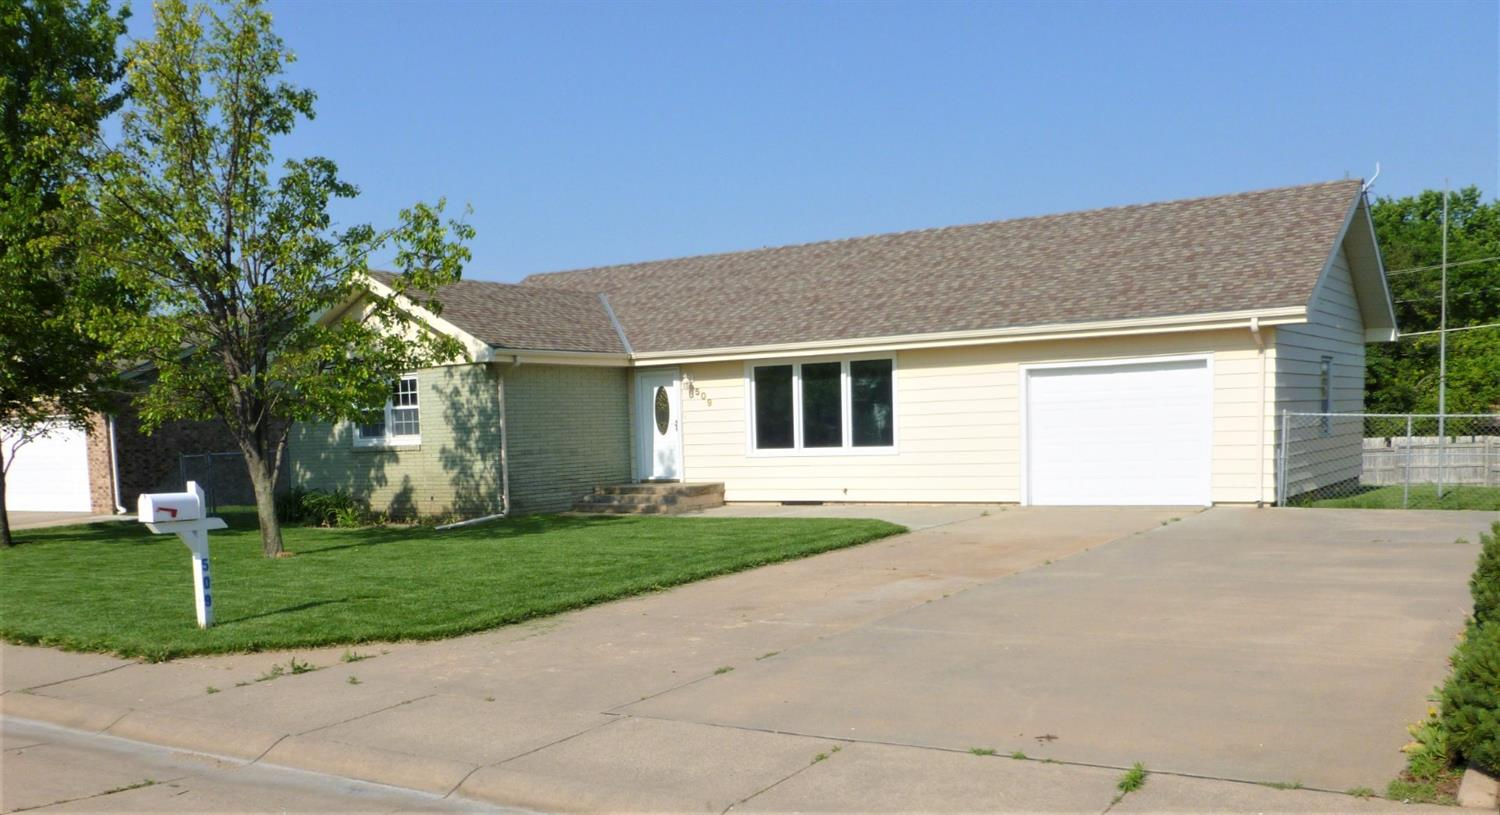 YOU HAVE TO SEE this newly remodeled home in great neighborhood in Hoisington.  Gorgeous only begins to describe this 4 bedroom 2 bath house with totally open floor plan. The 1244 sq ft main floor includes a new, remote controlled, ventless gas fireplace as the centerpiece of the living space. Bathrooms and fixtures are modern and tastefully done. Whoever buys this home can do their laundry on the main floor or in the basement utility room. Don't wait to schedule your showing!!